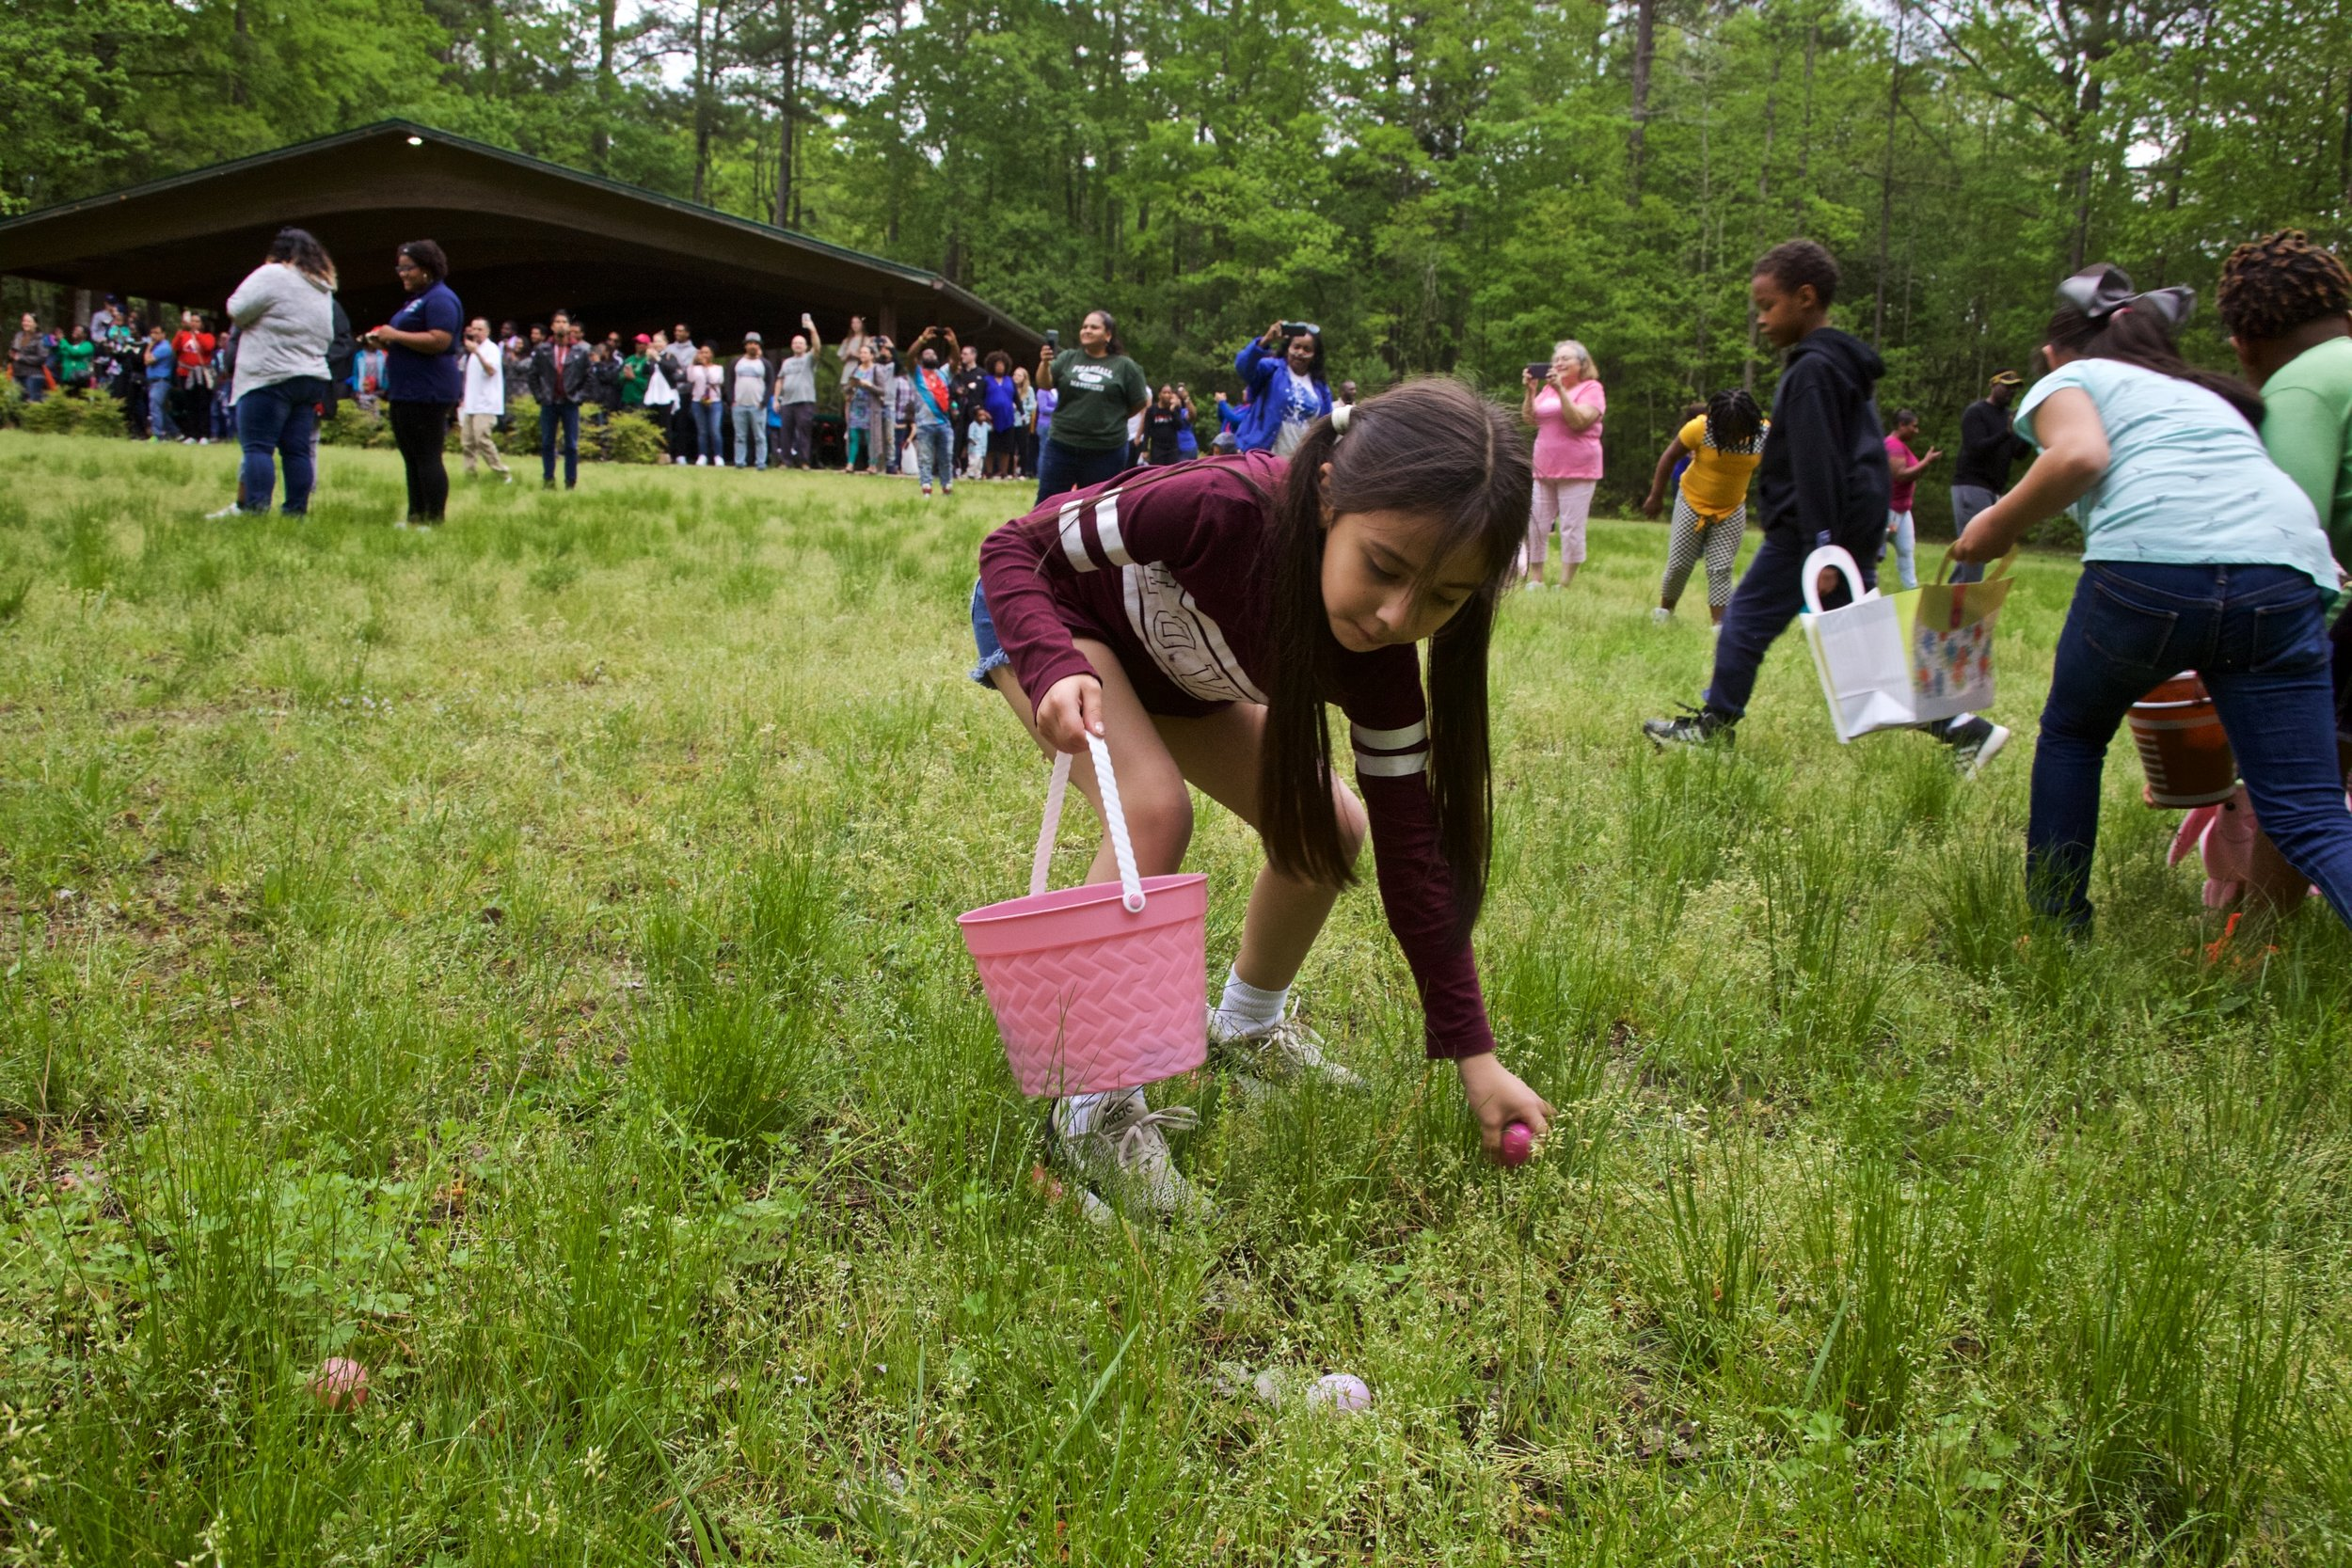 2019.4.20 Raleigh NPHC Easter Egg Hunt by StanChambersJr Photography 28.jpg